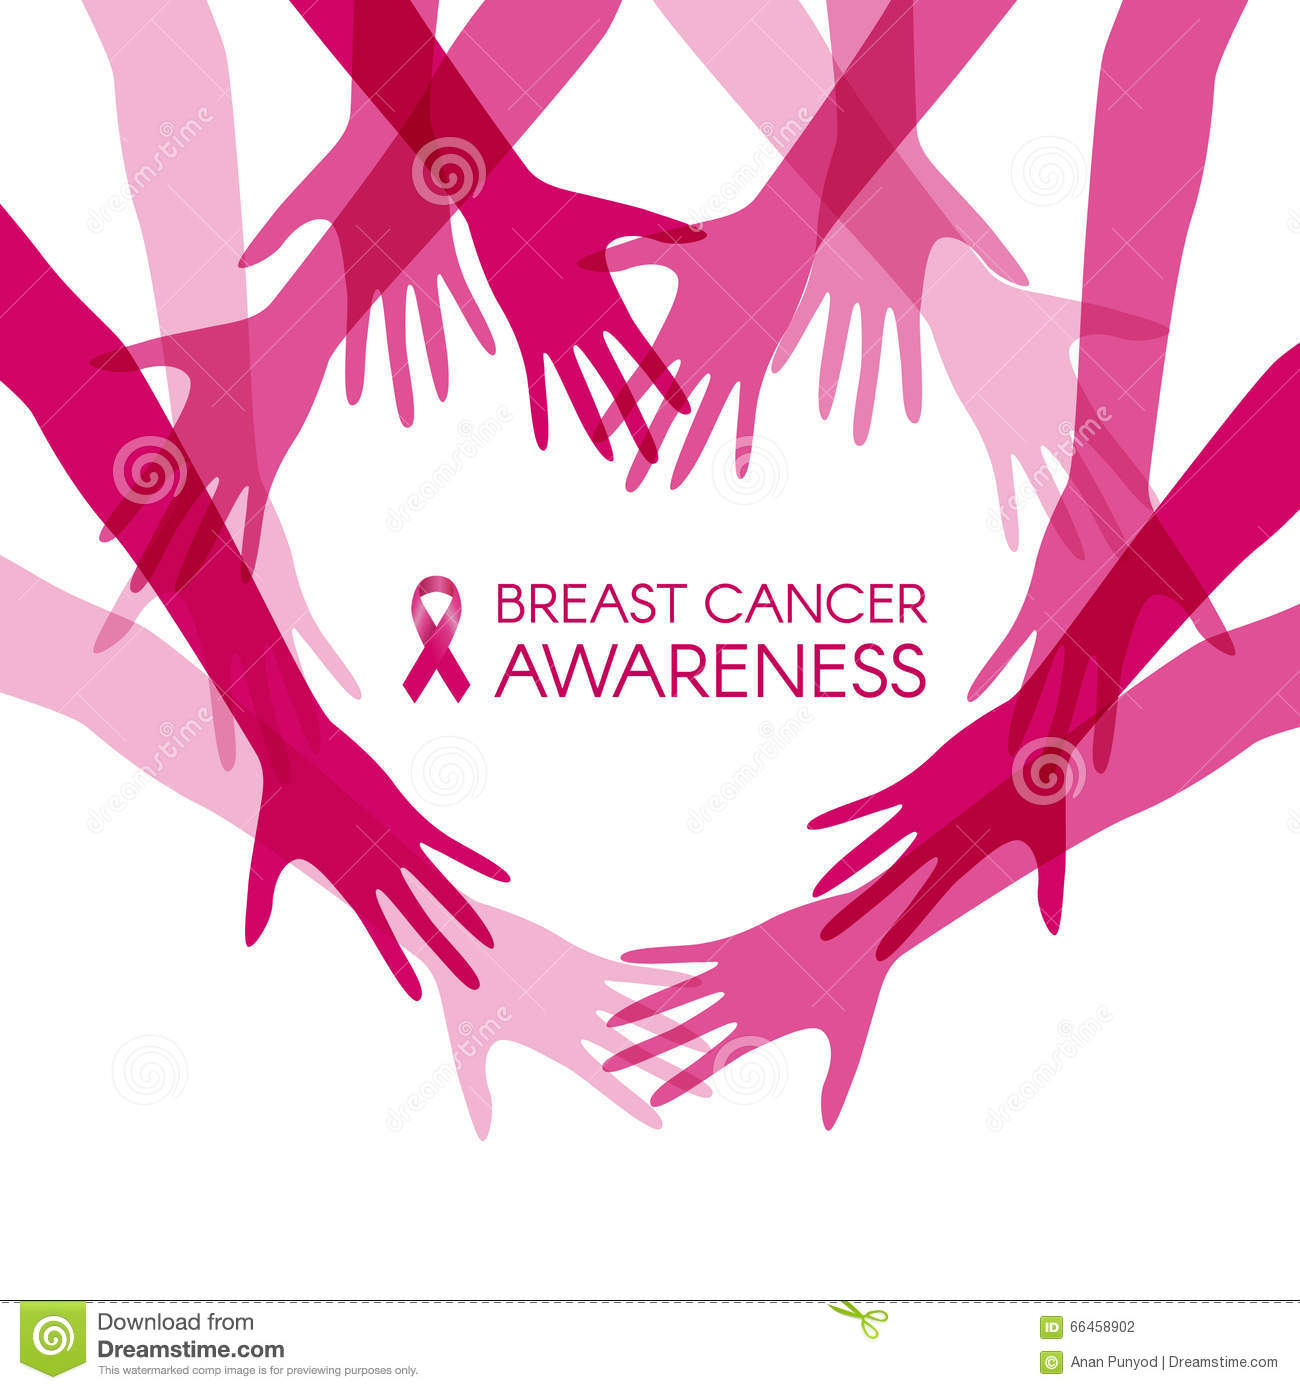 breast cancer awareness women holding hands vector